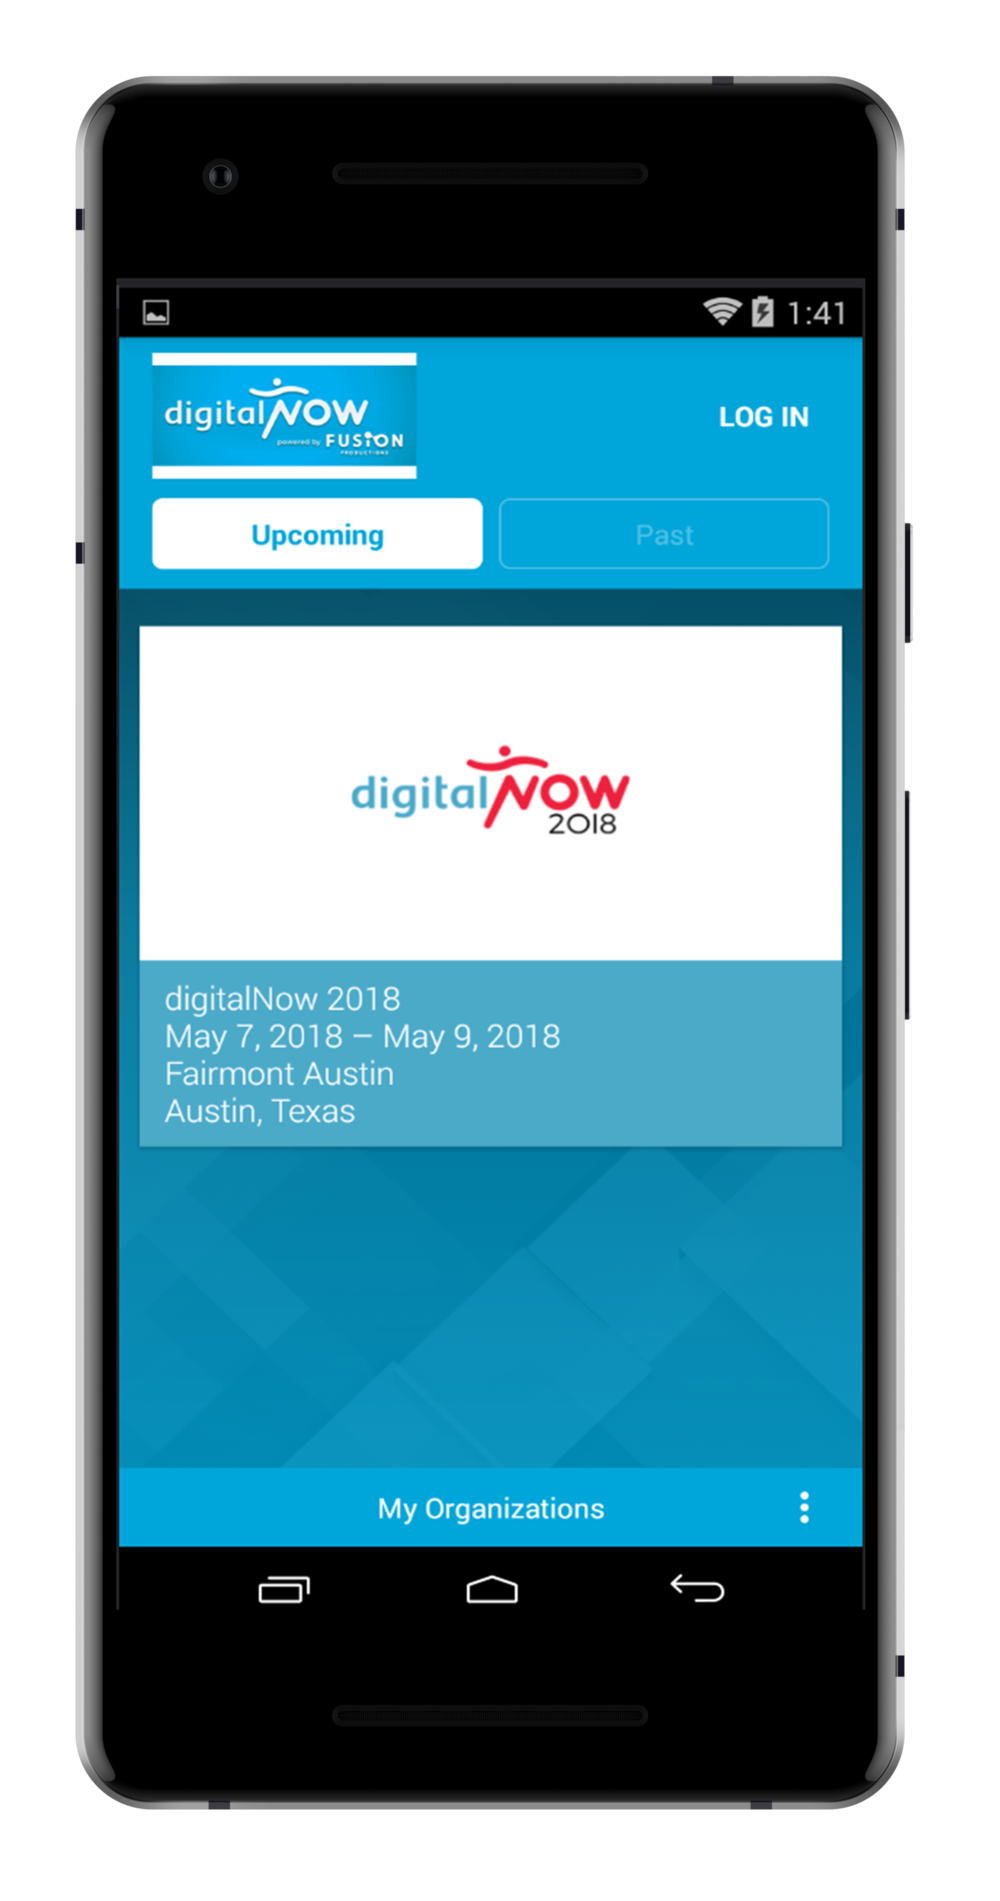 step 2. - SELECT THE DIGITALNOW 2018 EVENT.